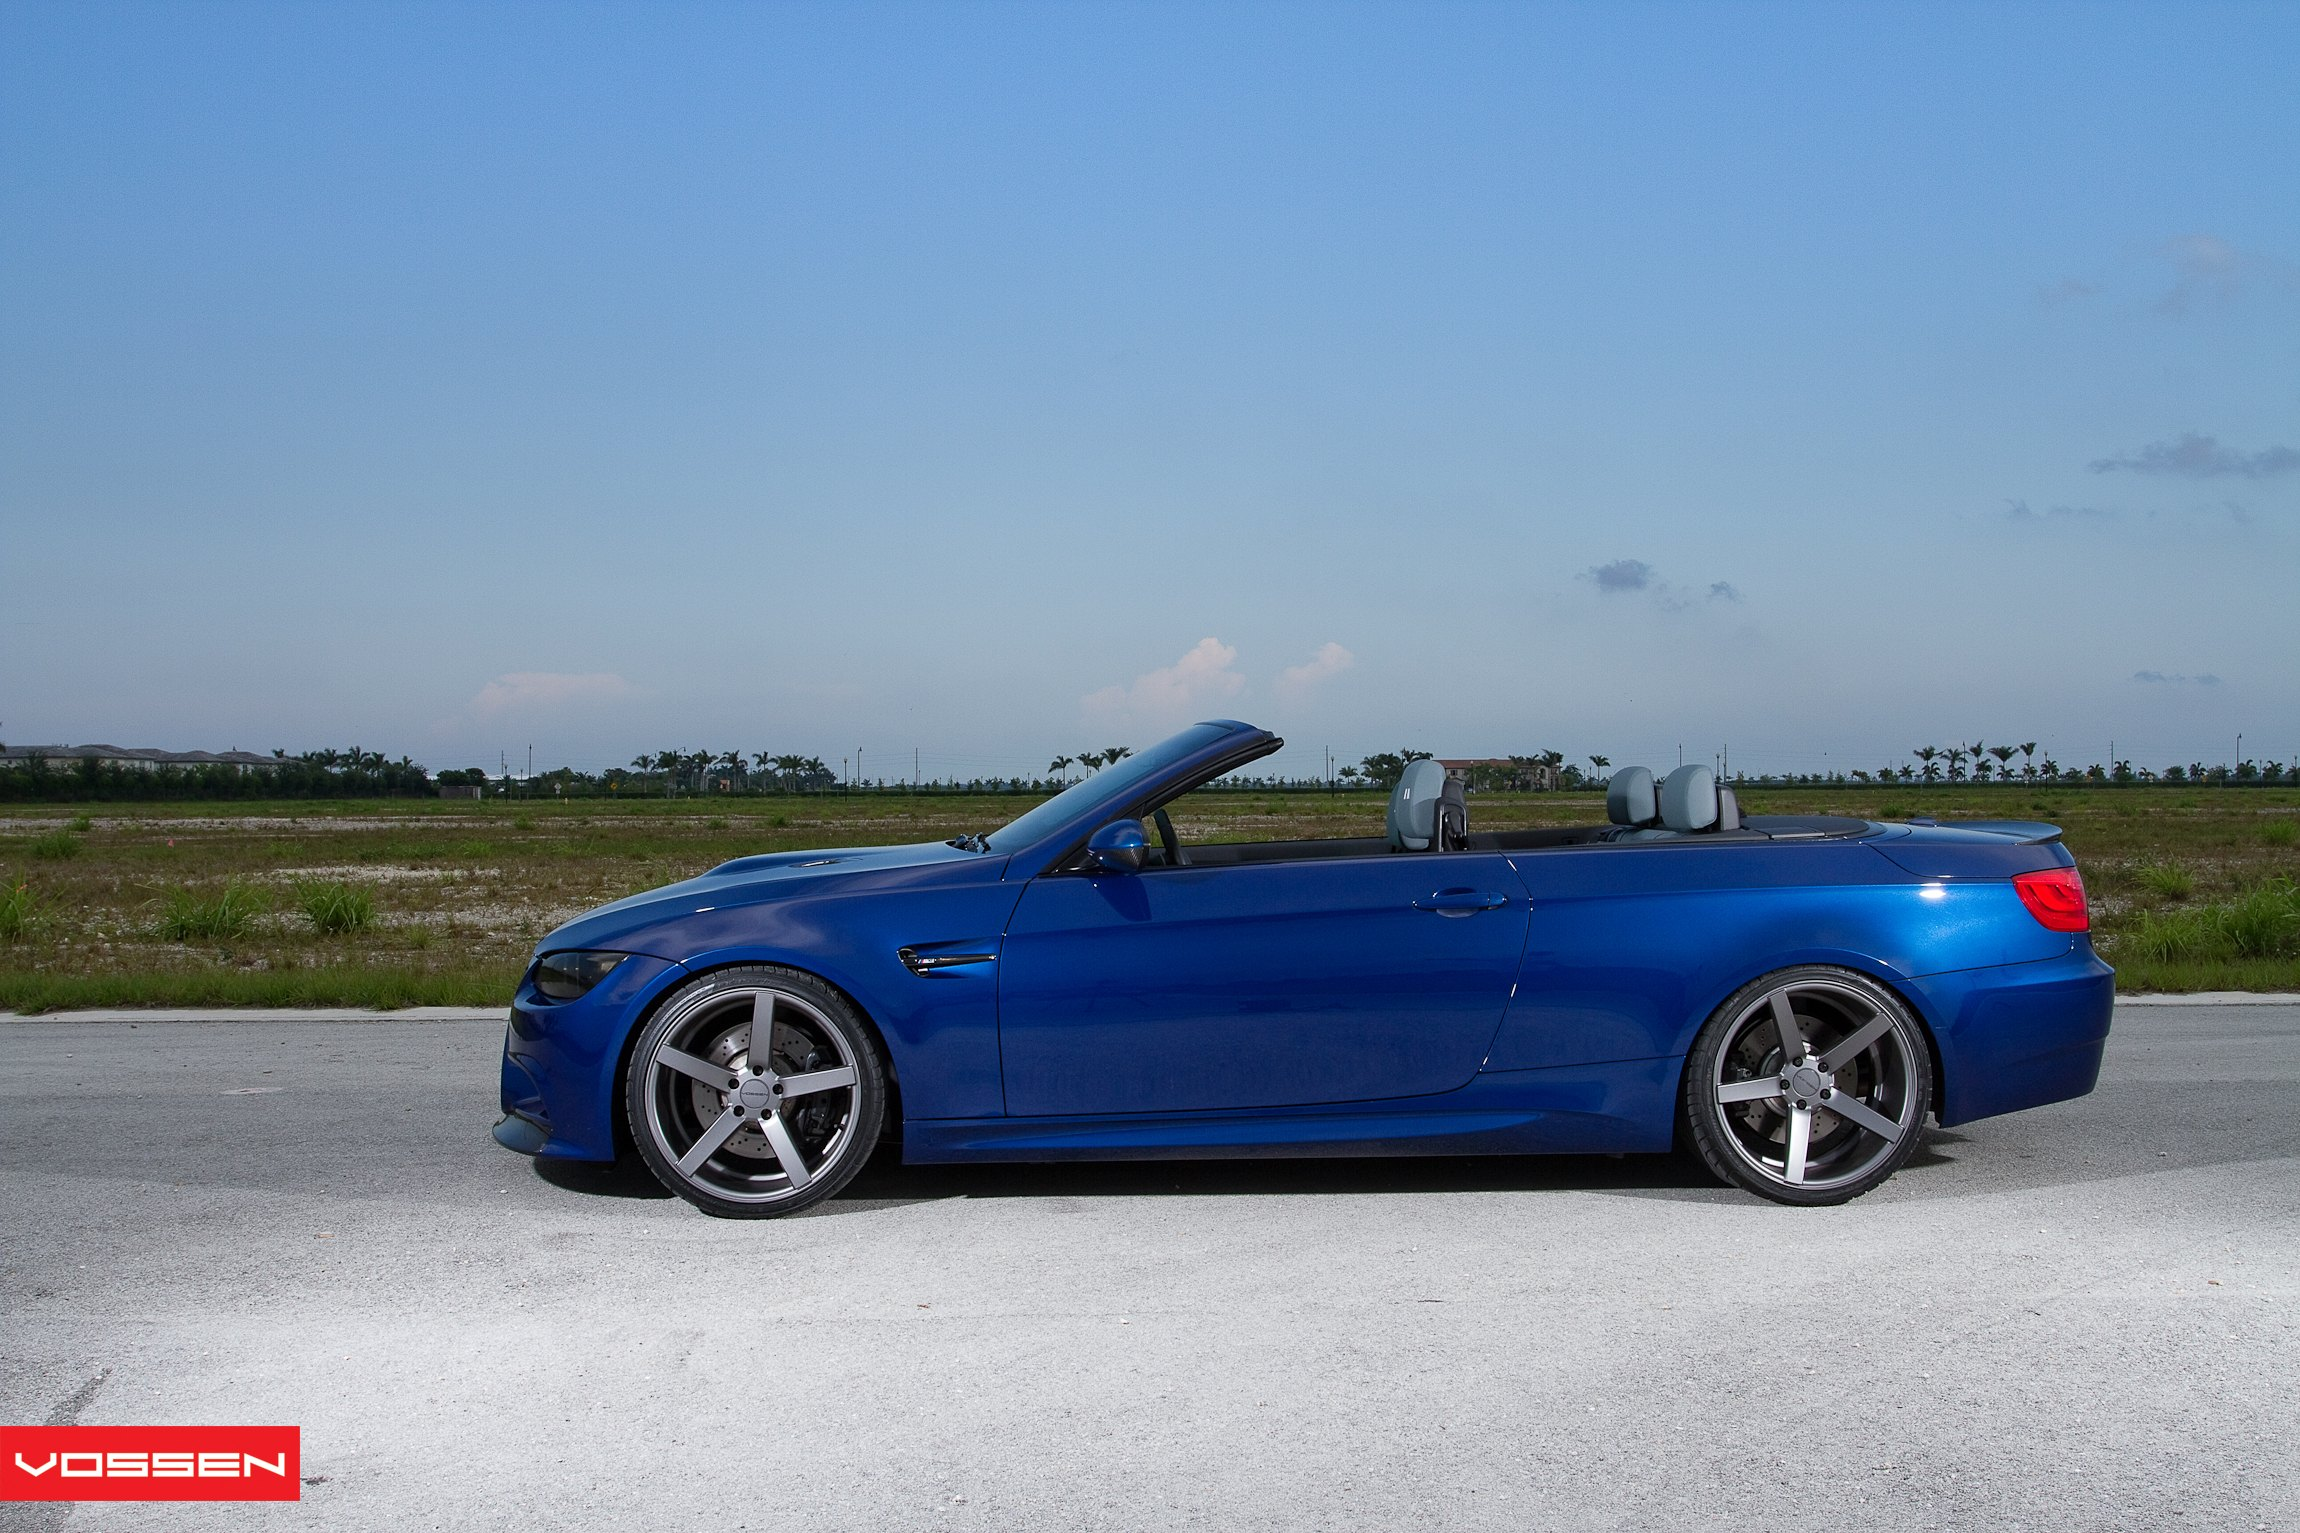 Custom Vossen Wheels on Blue Convertible BMW 3-Series - Photo by Vossen